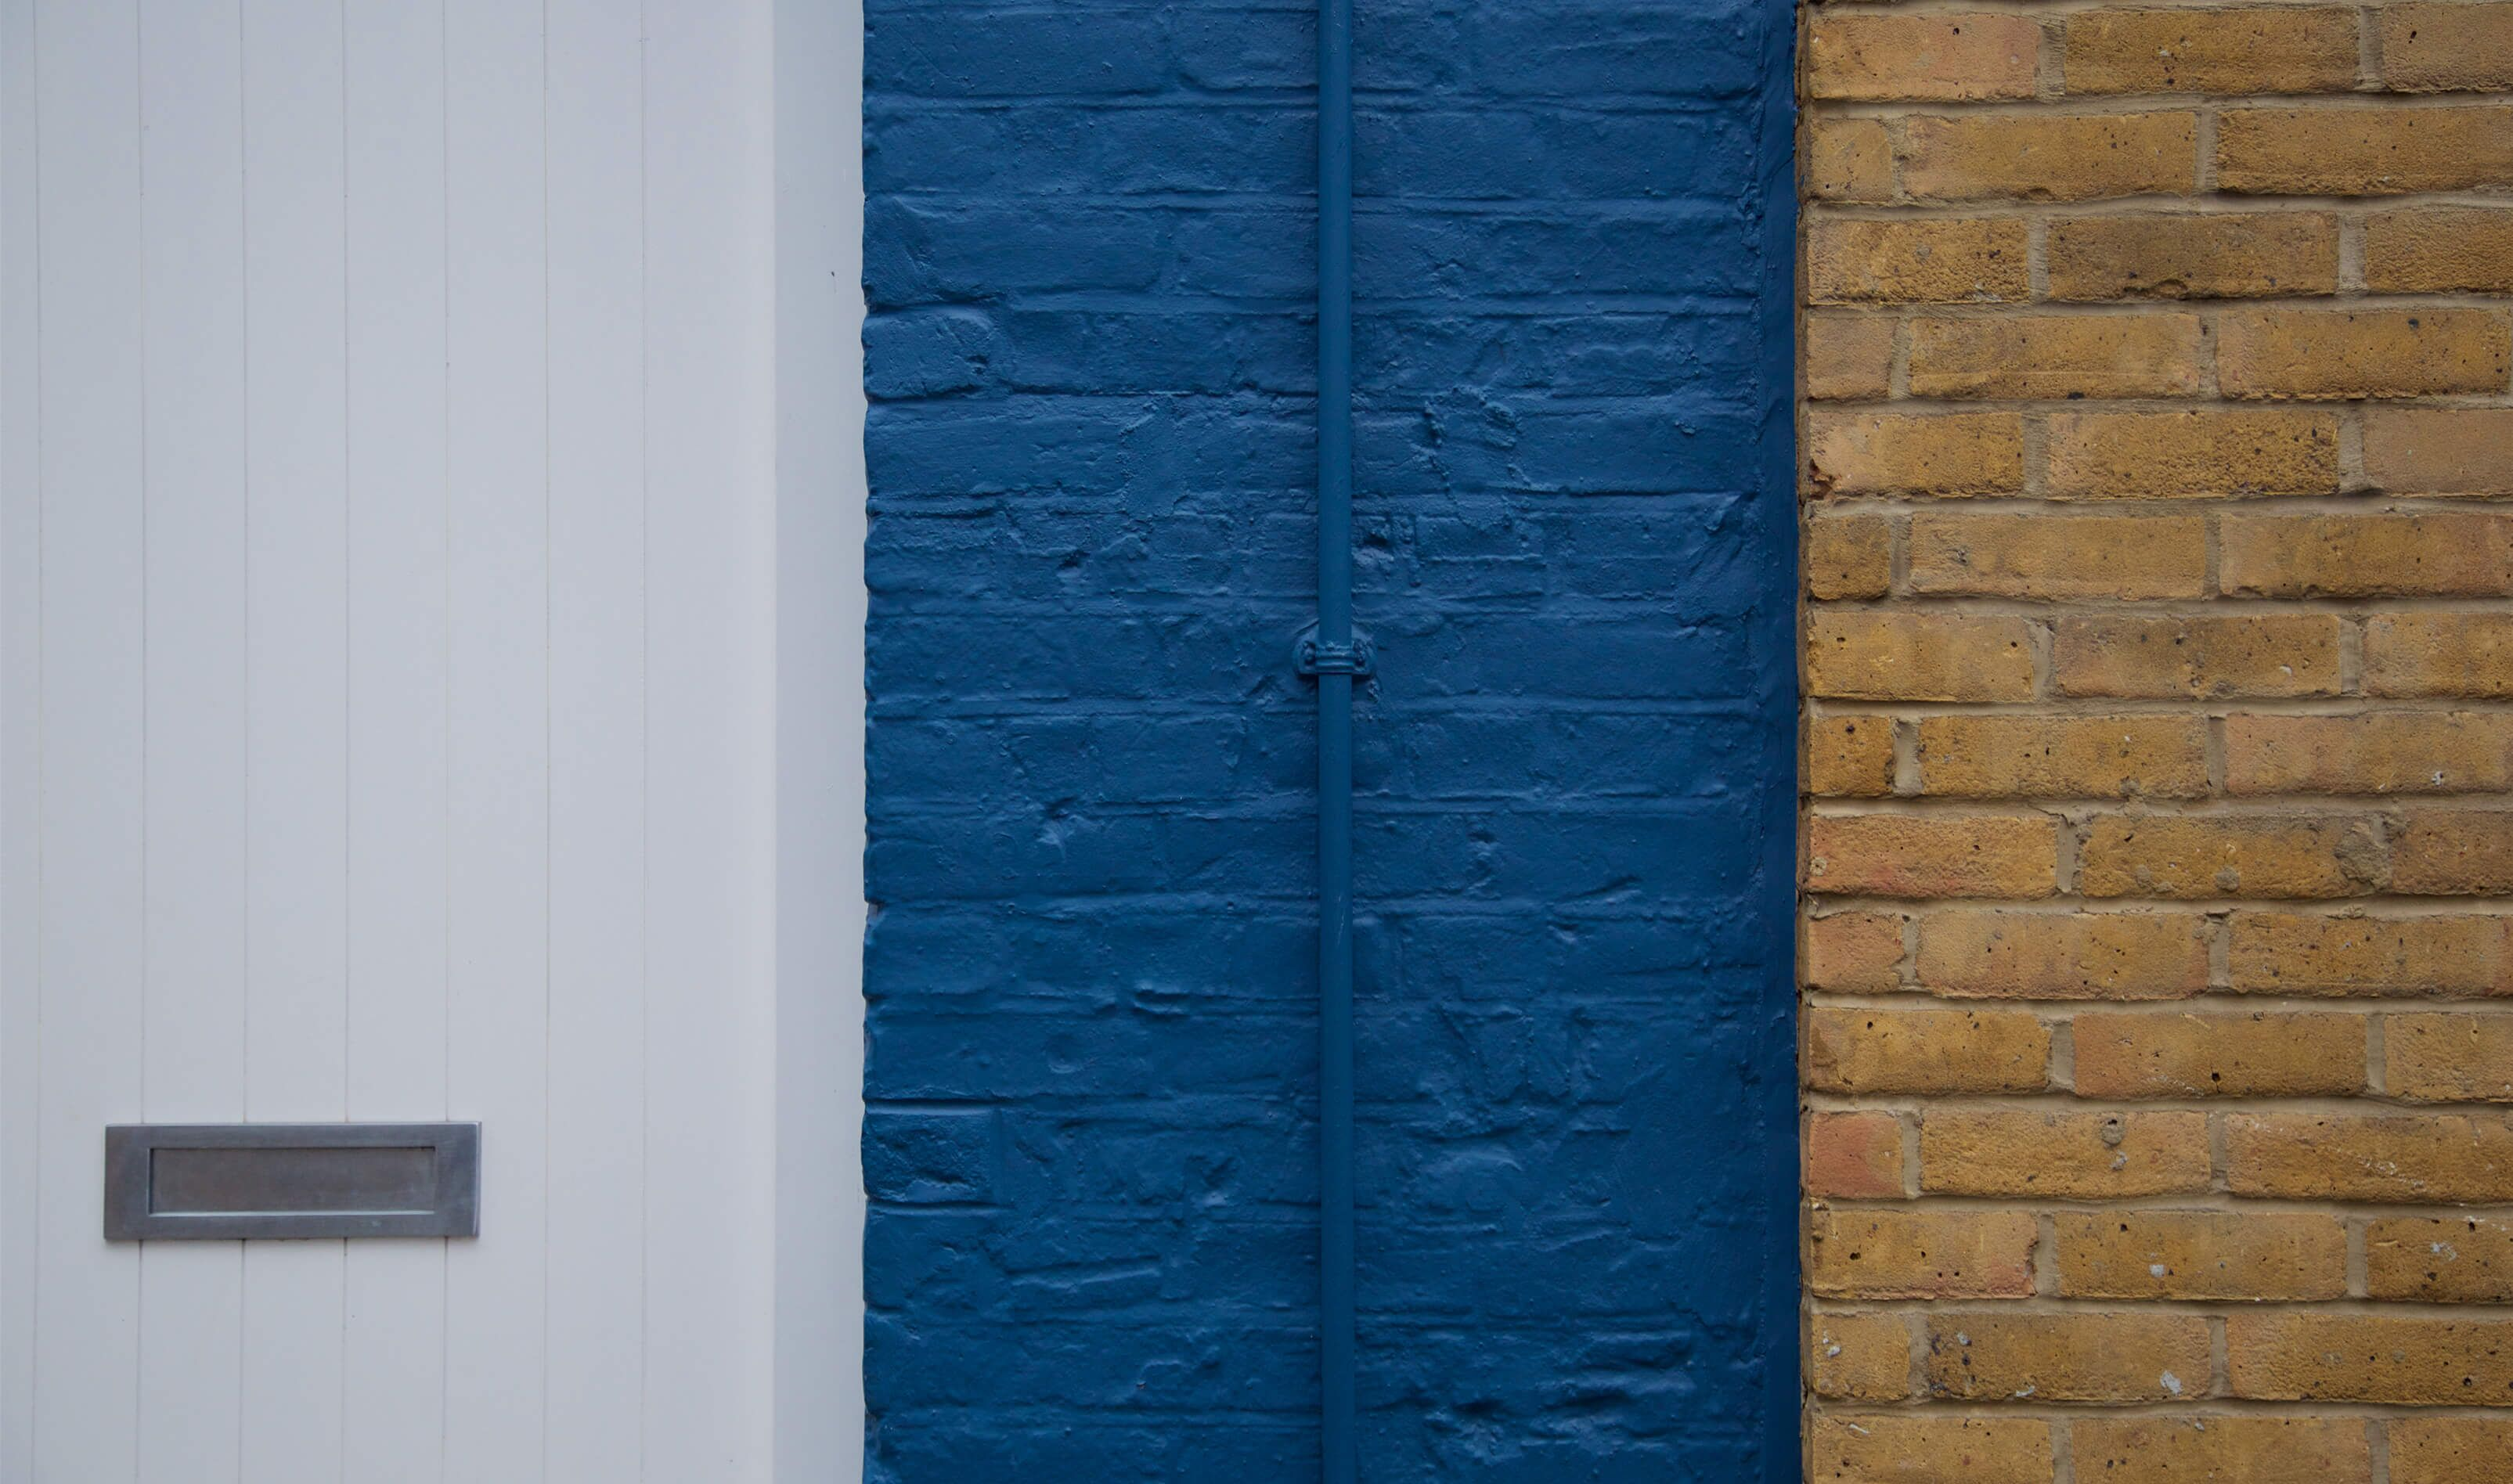 white door brick wall and painted blue wall